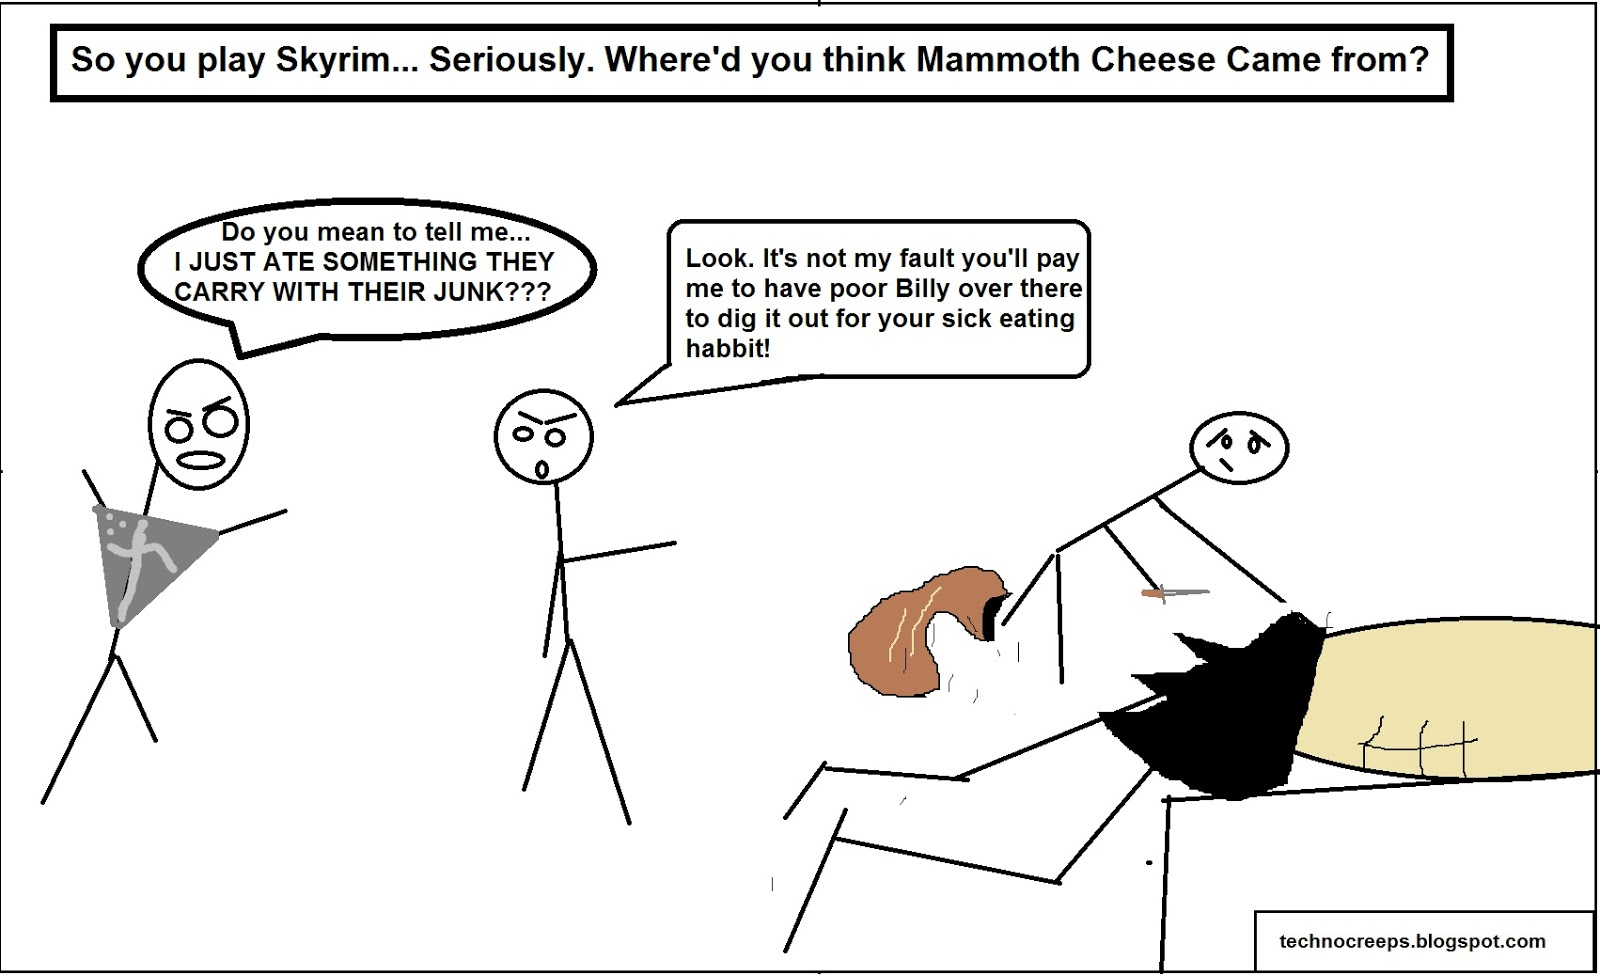 Mammoth Cheese Skyrim Skyrim Where The Mammoth